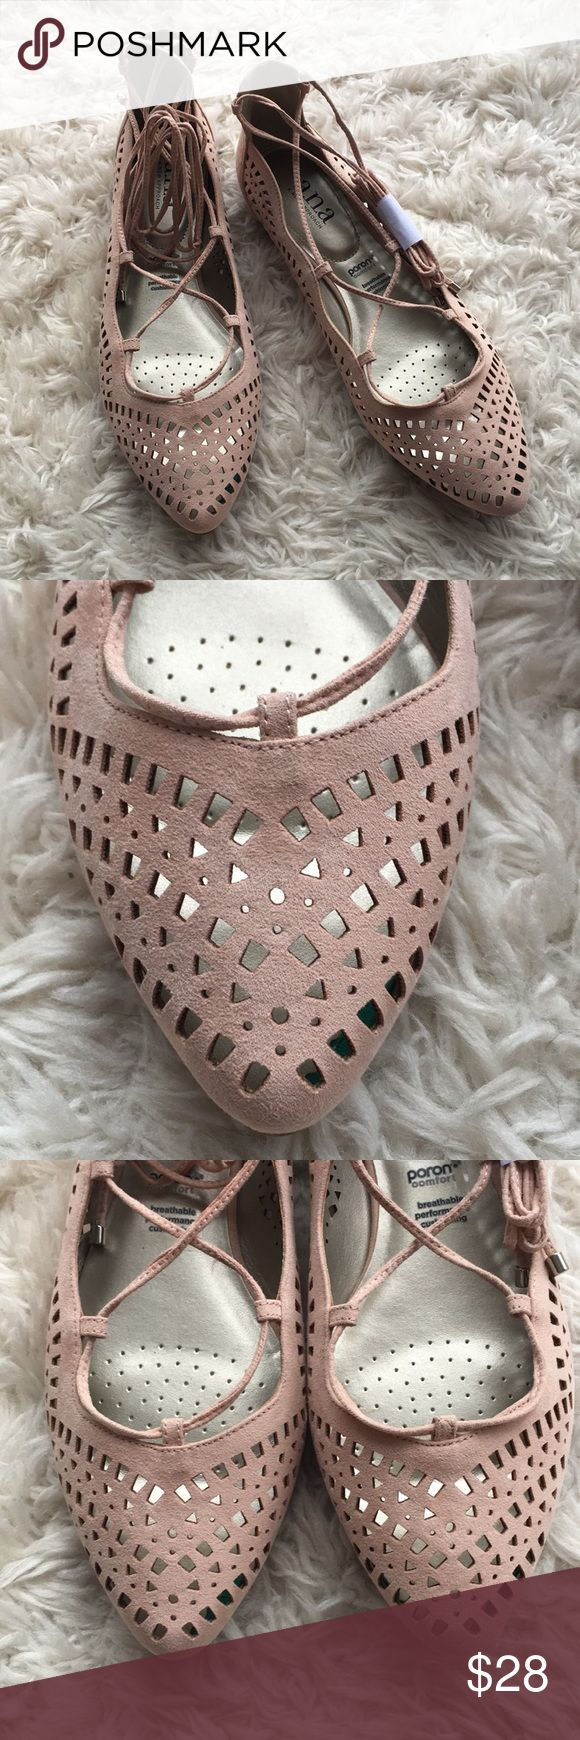 NWOT Laser Cut Lace Up Flats These flats are a blush Laser Cut style. These are NWOT. There is a faint factory glue spot on the back right shoe, not incredibly noticeable. Size 9. Save on ✈️SHIPPING✈️and BUNDLE! I even give a discount on 3 or more regularly priced item bundles. I always accept reasonable offers with the offer button! ❌Lowball offers please! a.n.a Shoes Flats & Loafers